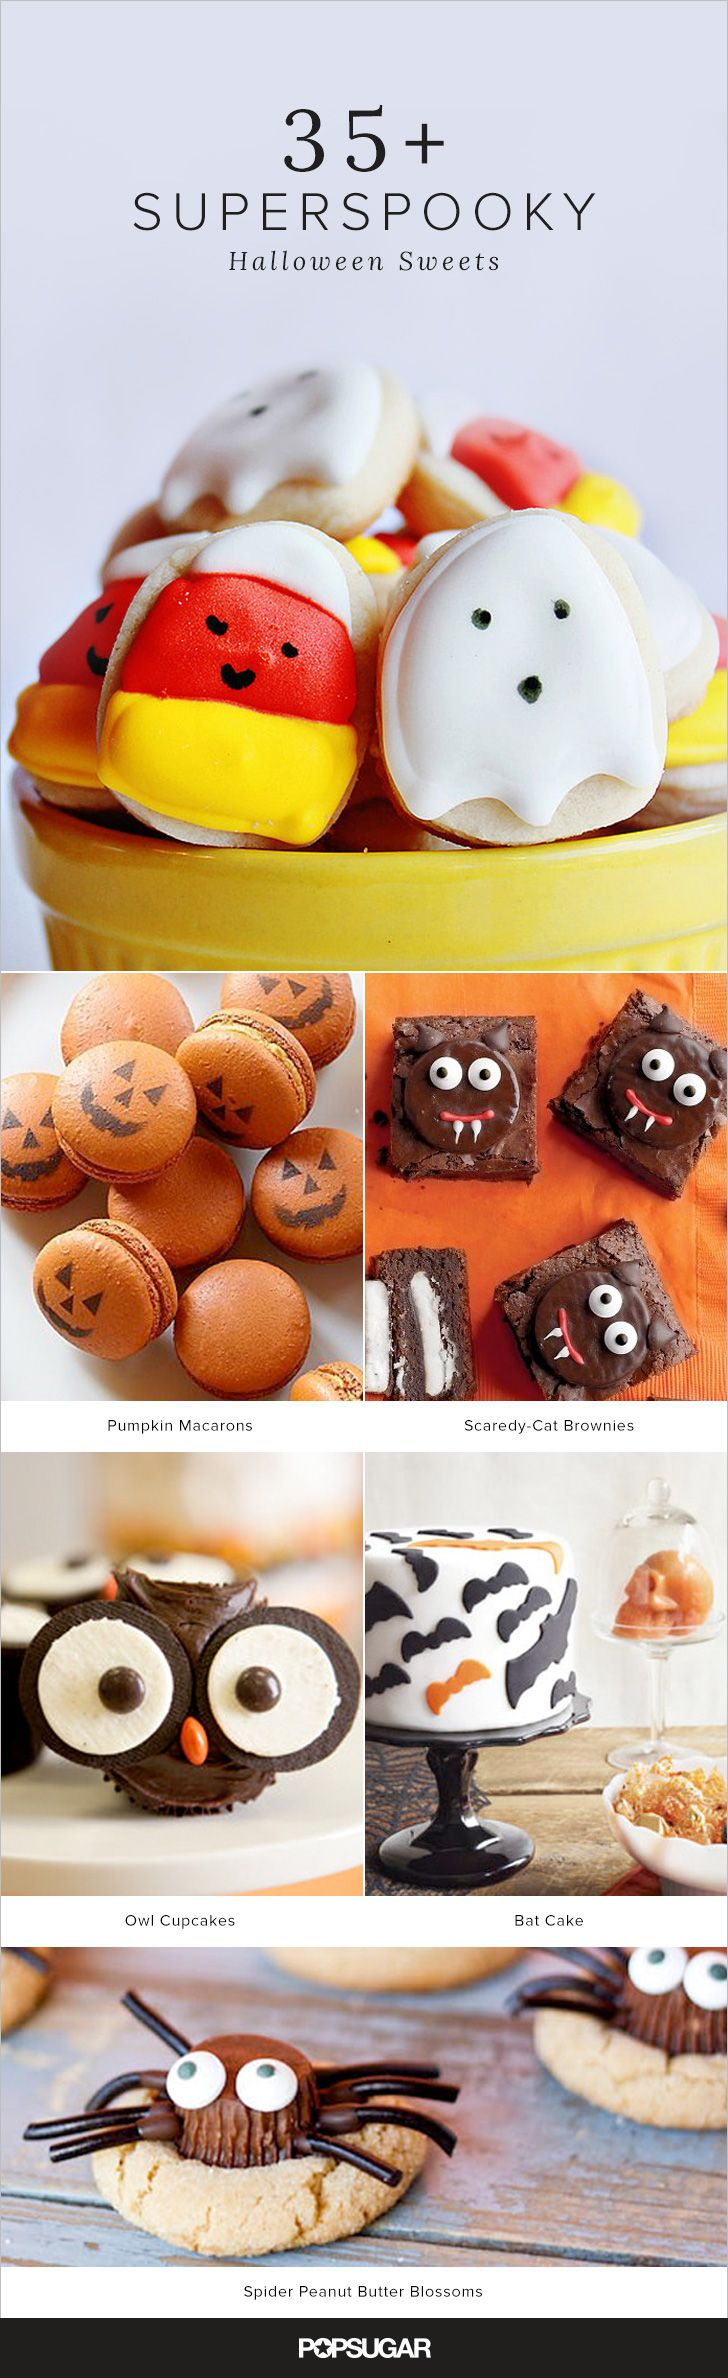 From the elaborate to simple, these 35 Halloween dessert inspirations might be scary, but they're also supersweet.